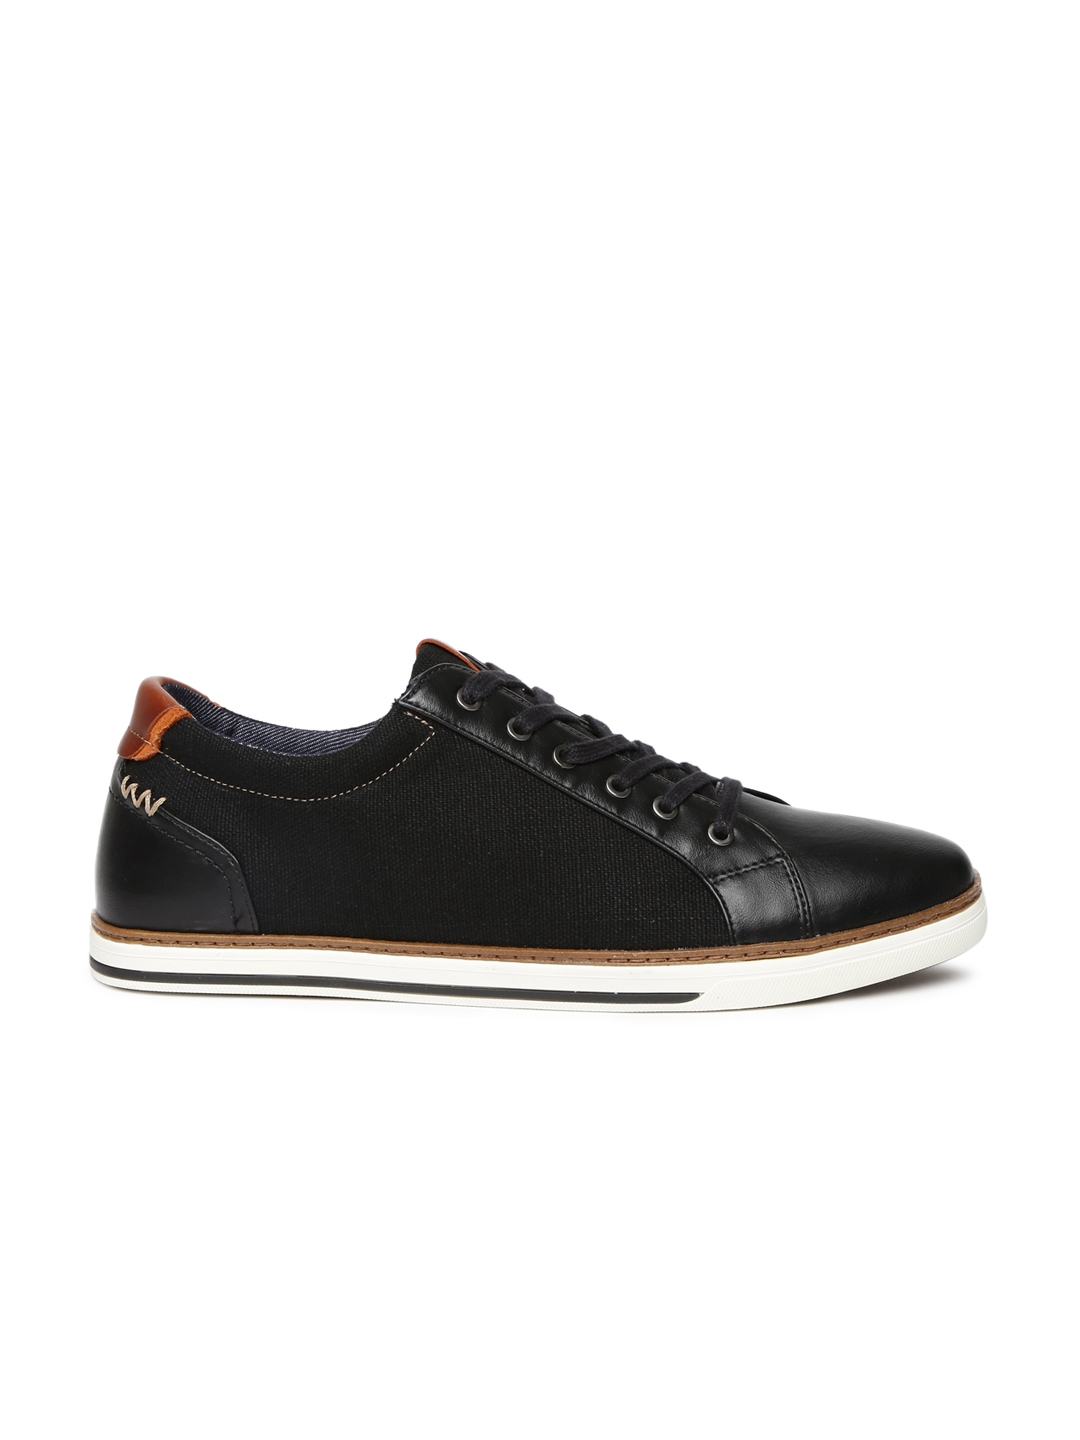 ca702884f39 Buy ALDO Men Black Giling Sneakers - Casual Shoes for Men 1949084 ...